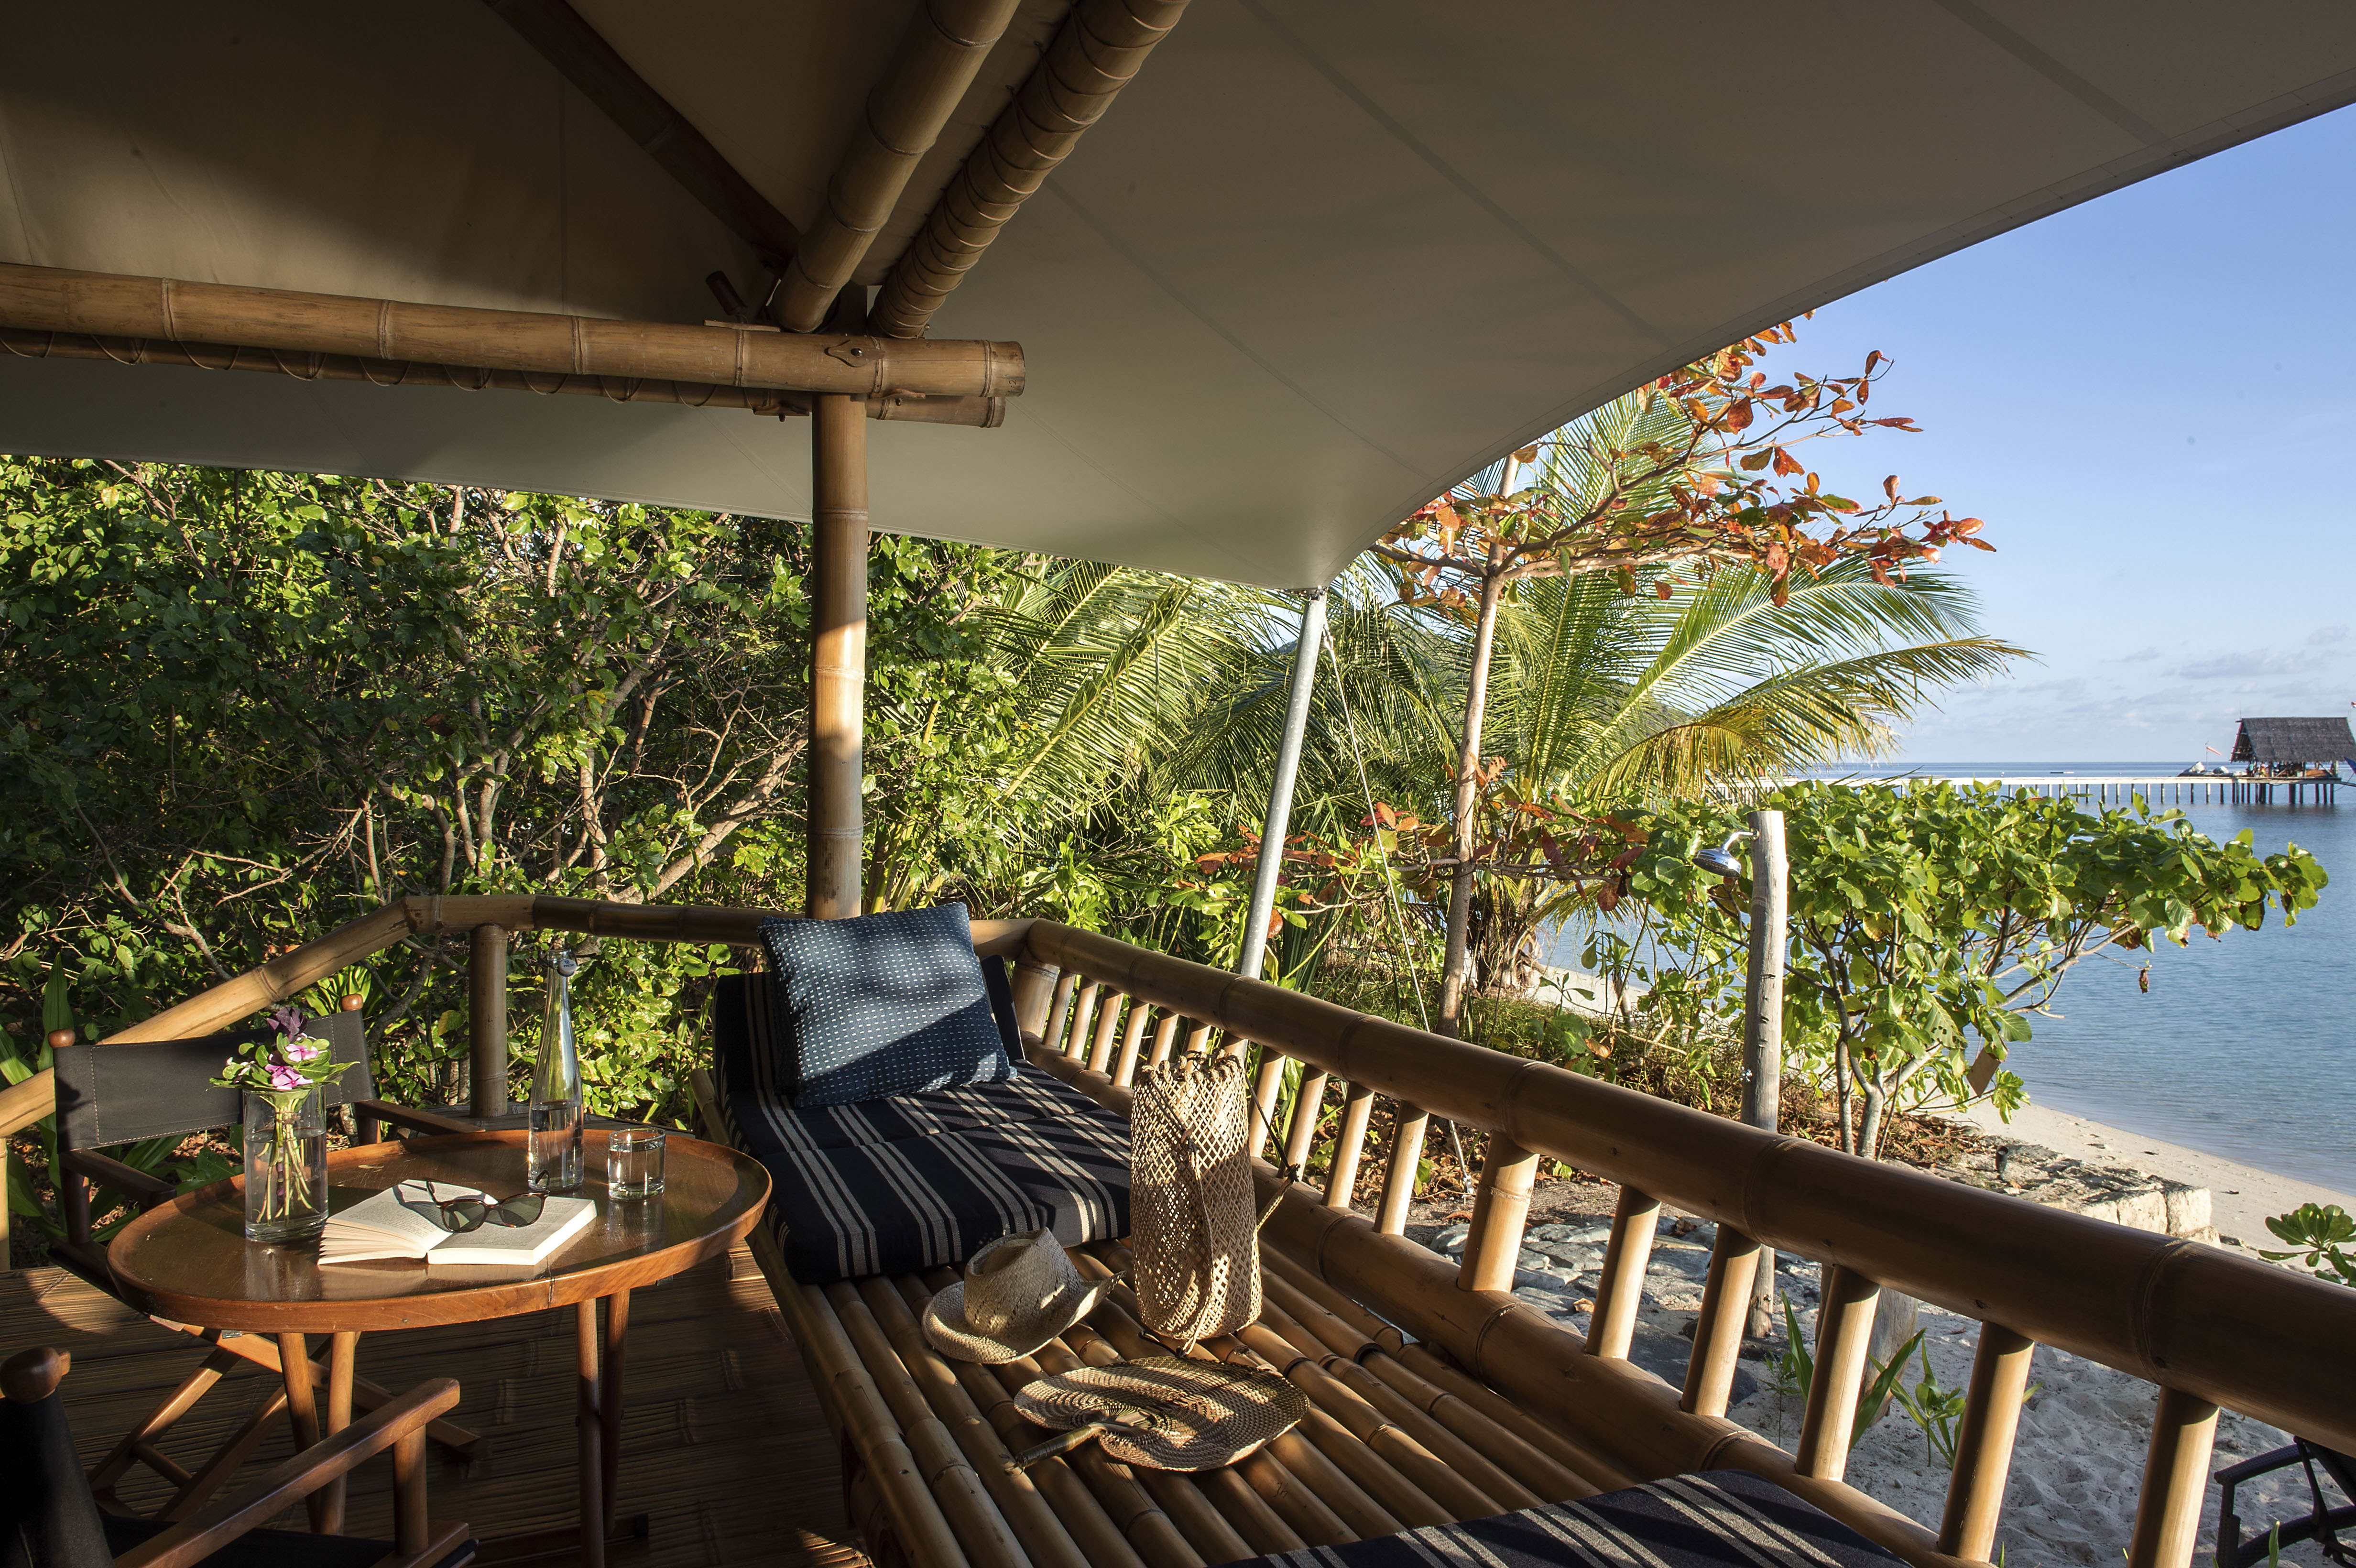 sunlight_into_straw_hat_wicker_bag_rattan_fan_on_bamboo_bench_side_arm_chairs_beach_suite_veranda_looking_out_jetty